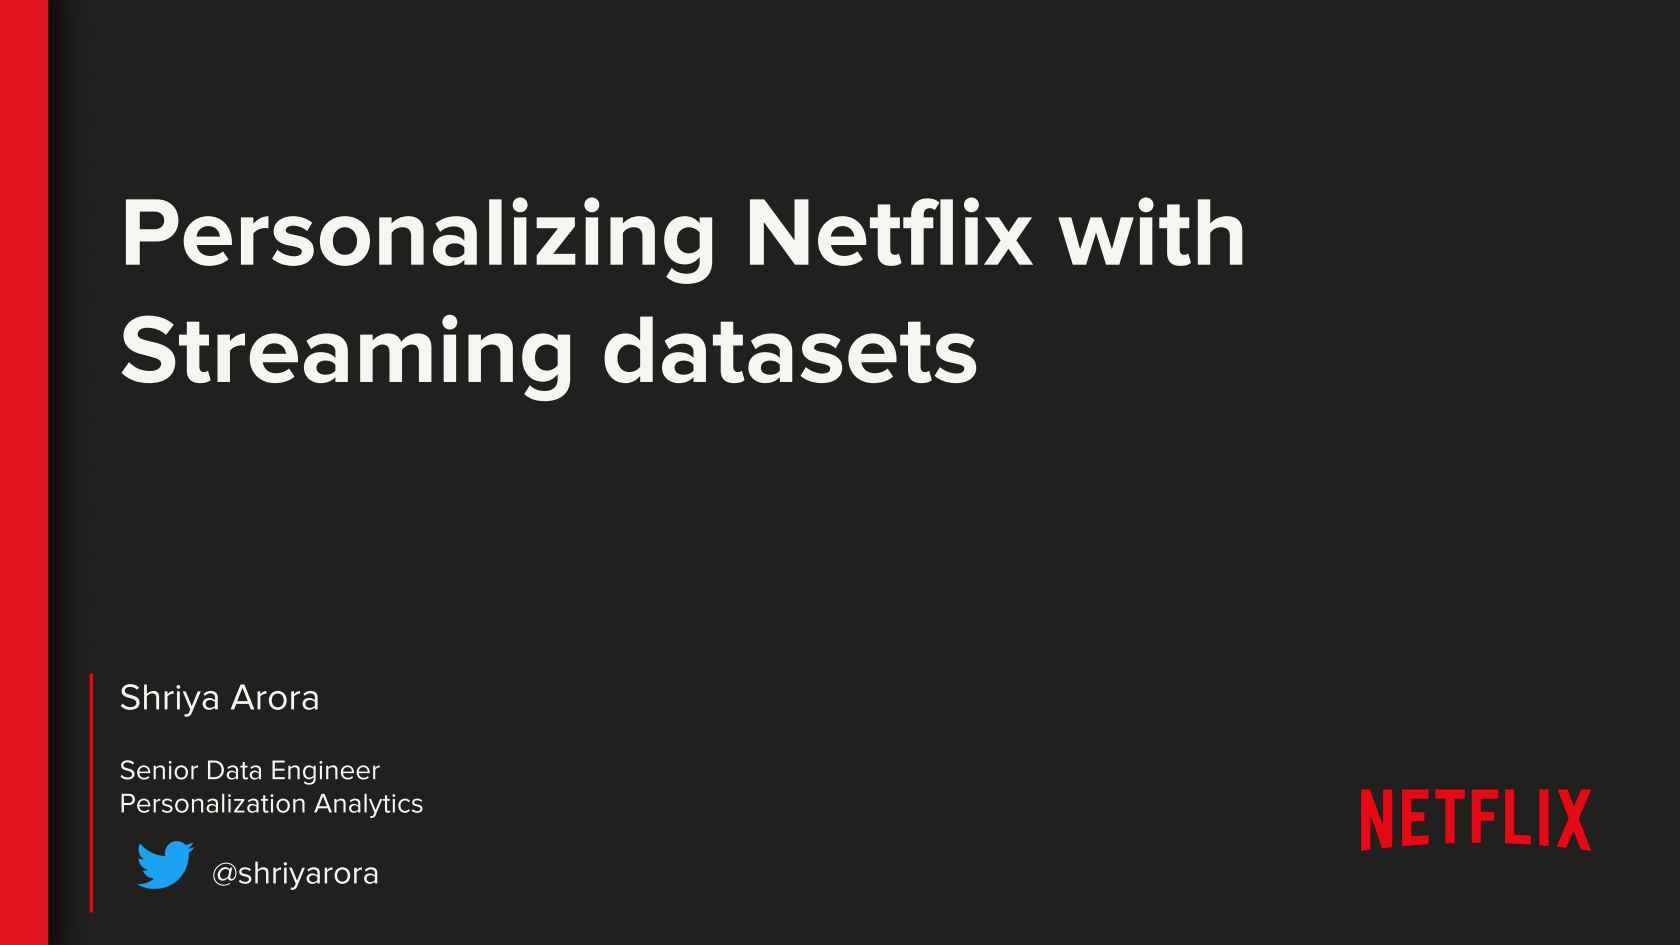 Streaming for Personalization Datasets at Netflix